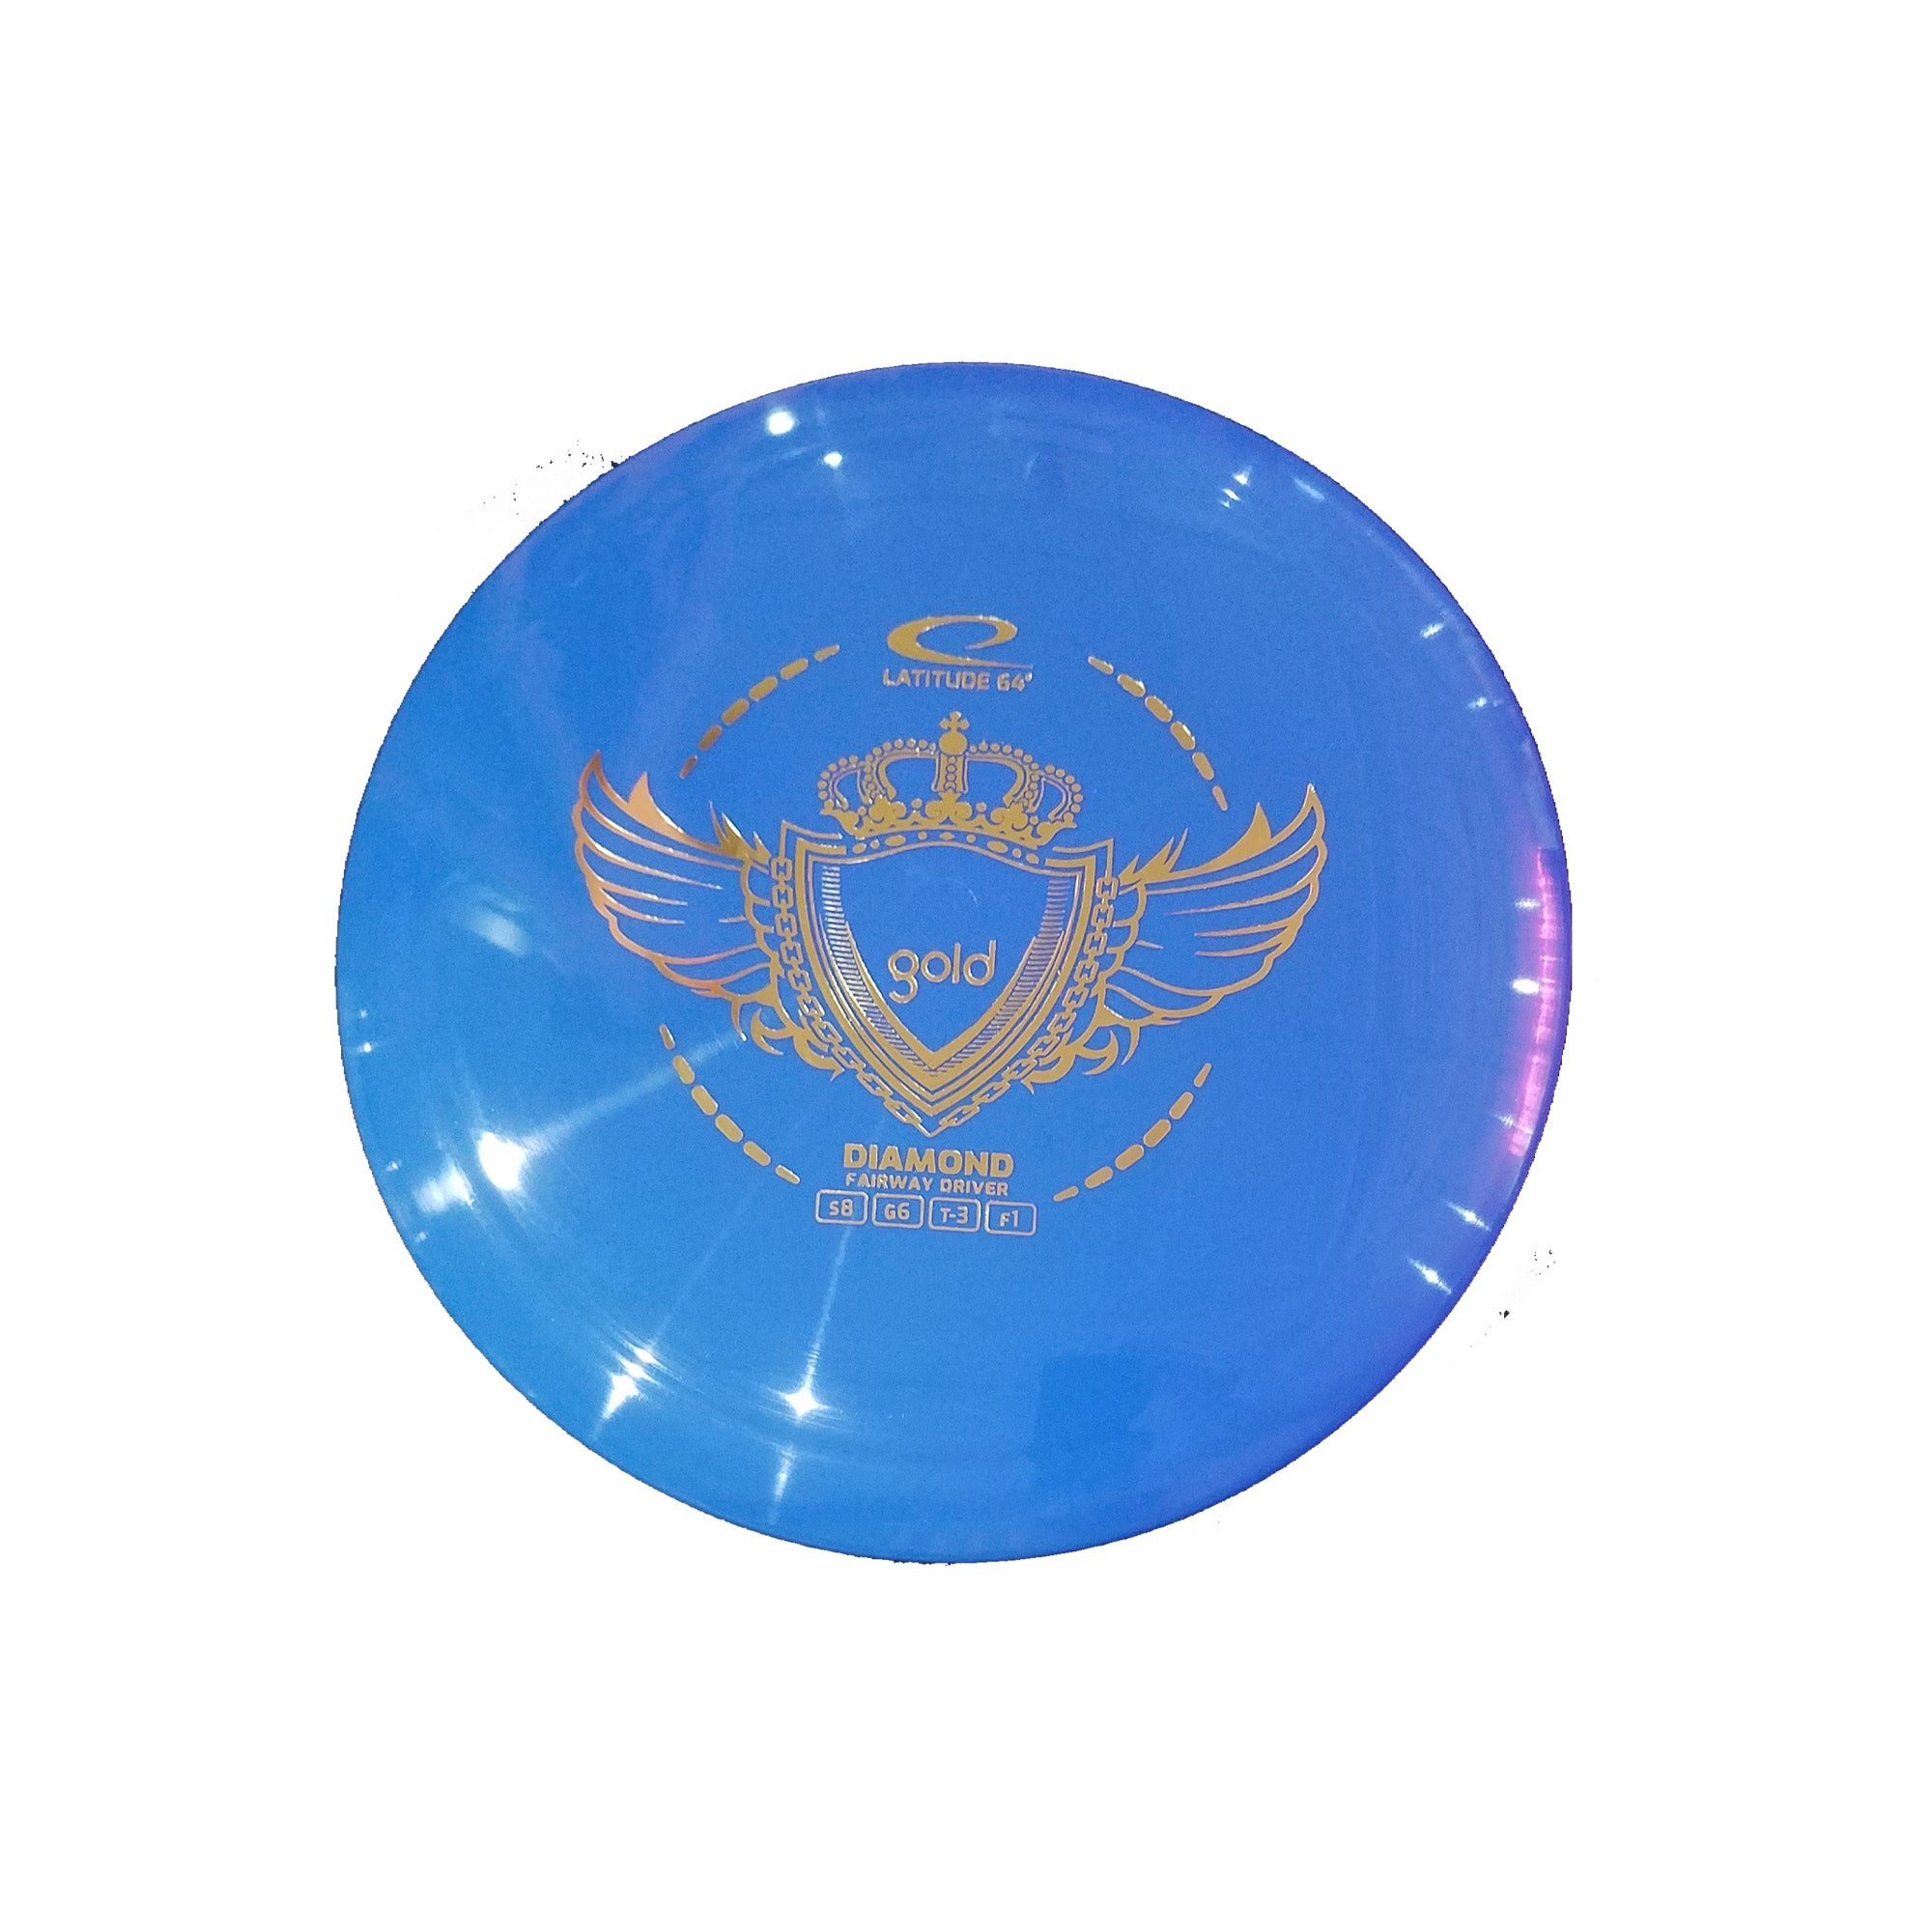 Latitude 64 Gold Diamond Fairway Driver Disc - 155g